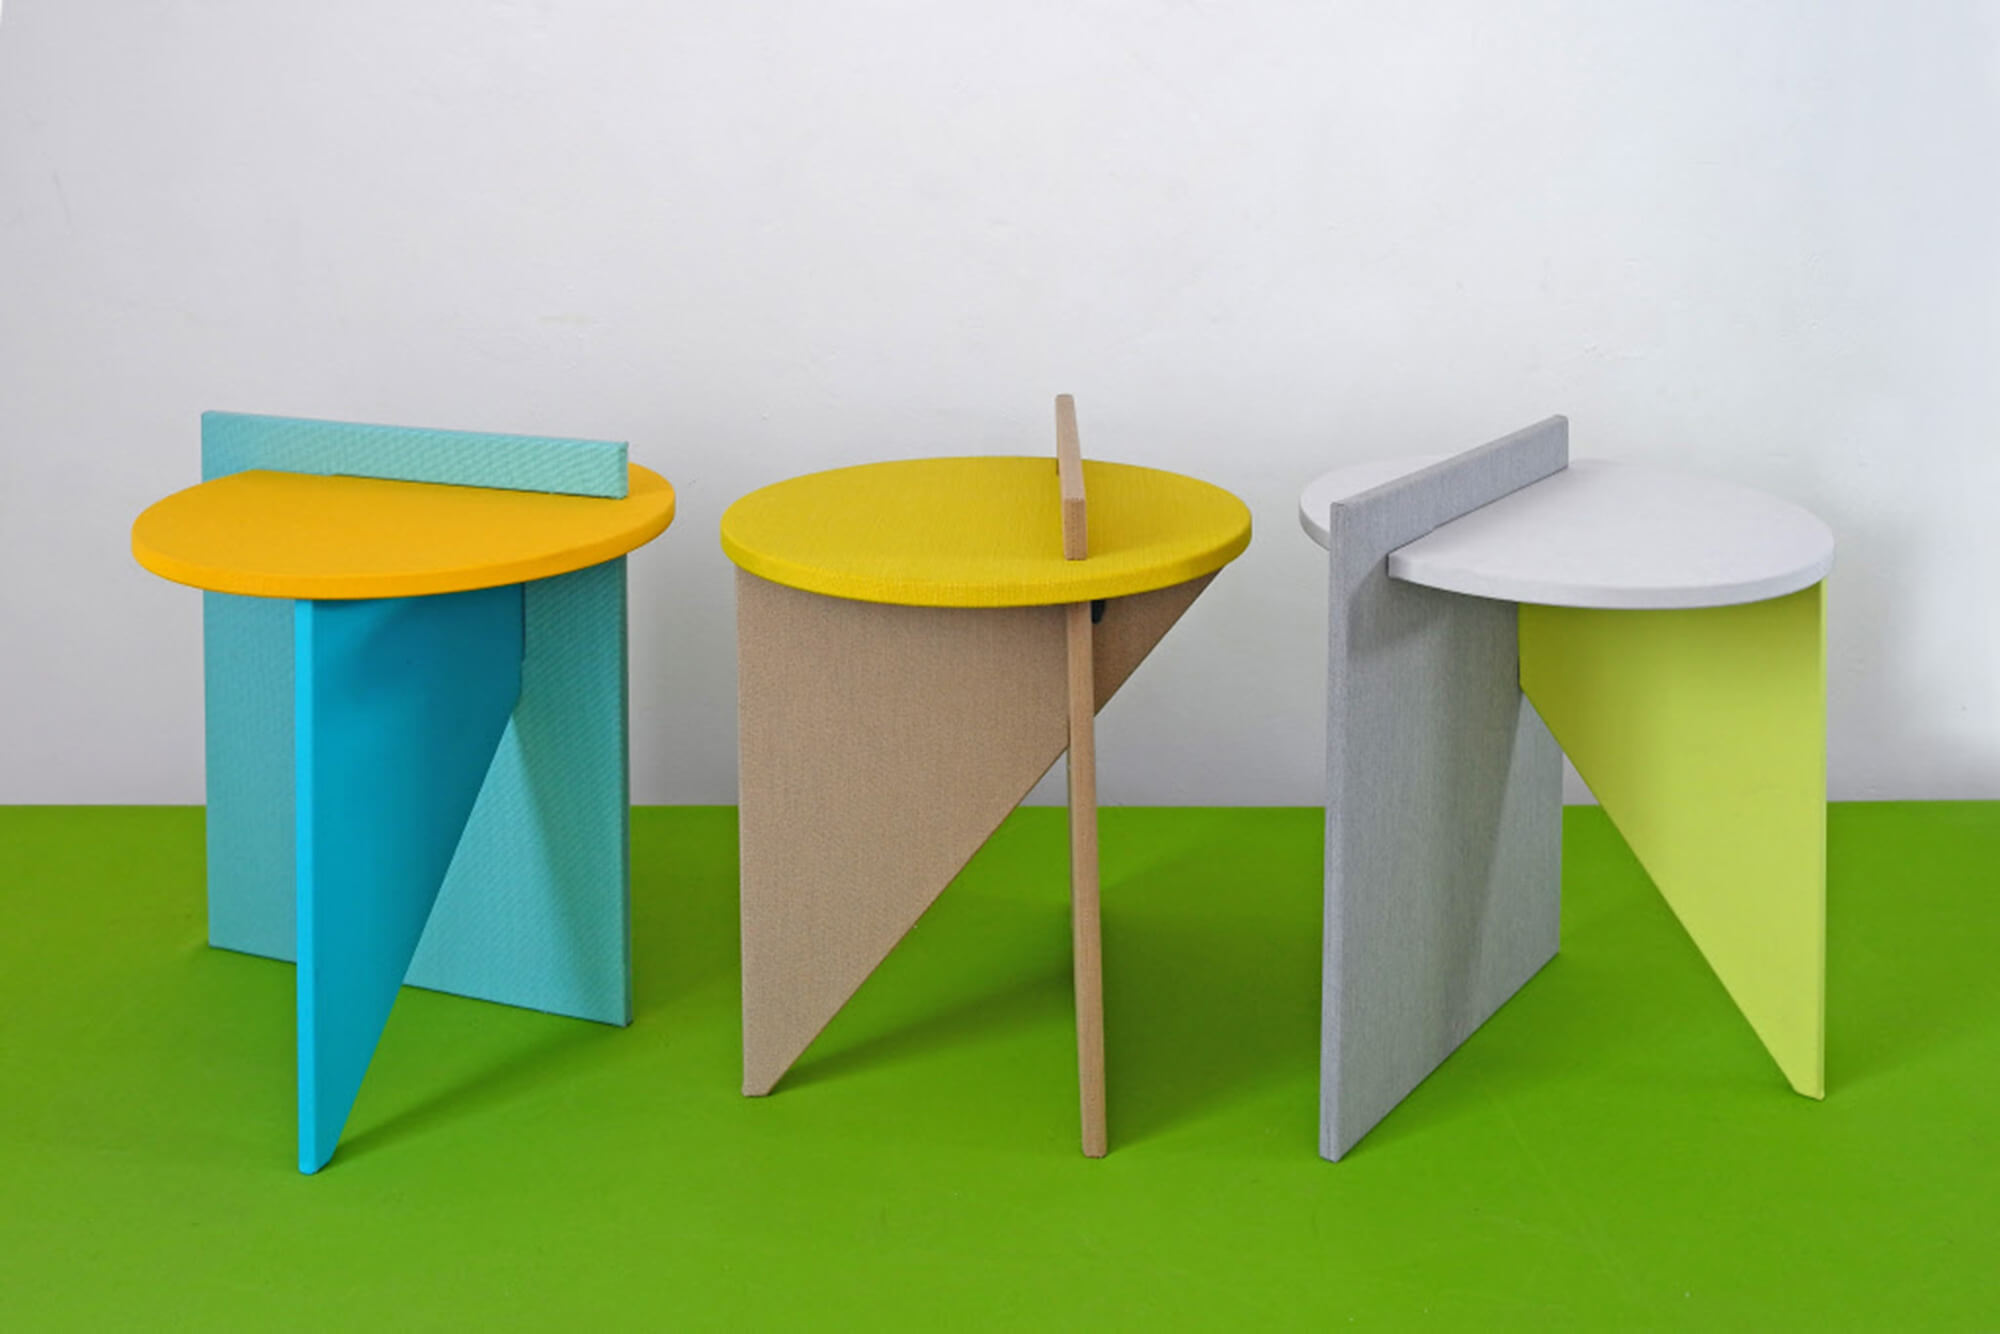 Side Tables by Atelier Lavit based on boat clamp design on display in the Rosana Orlandi gallery